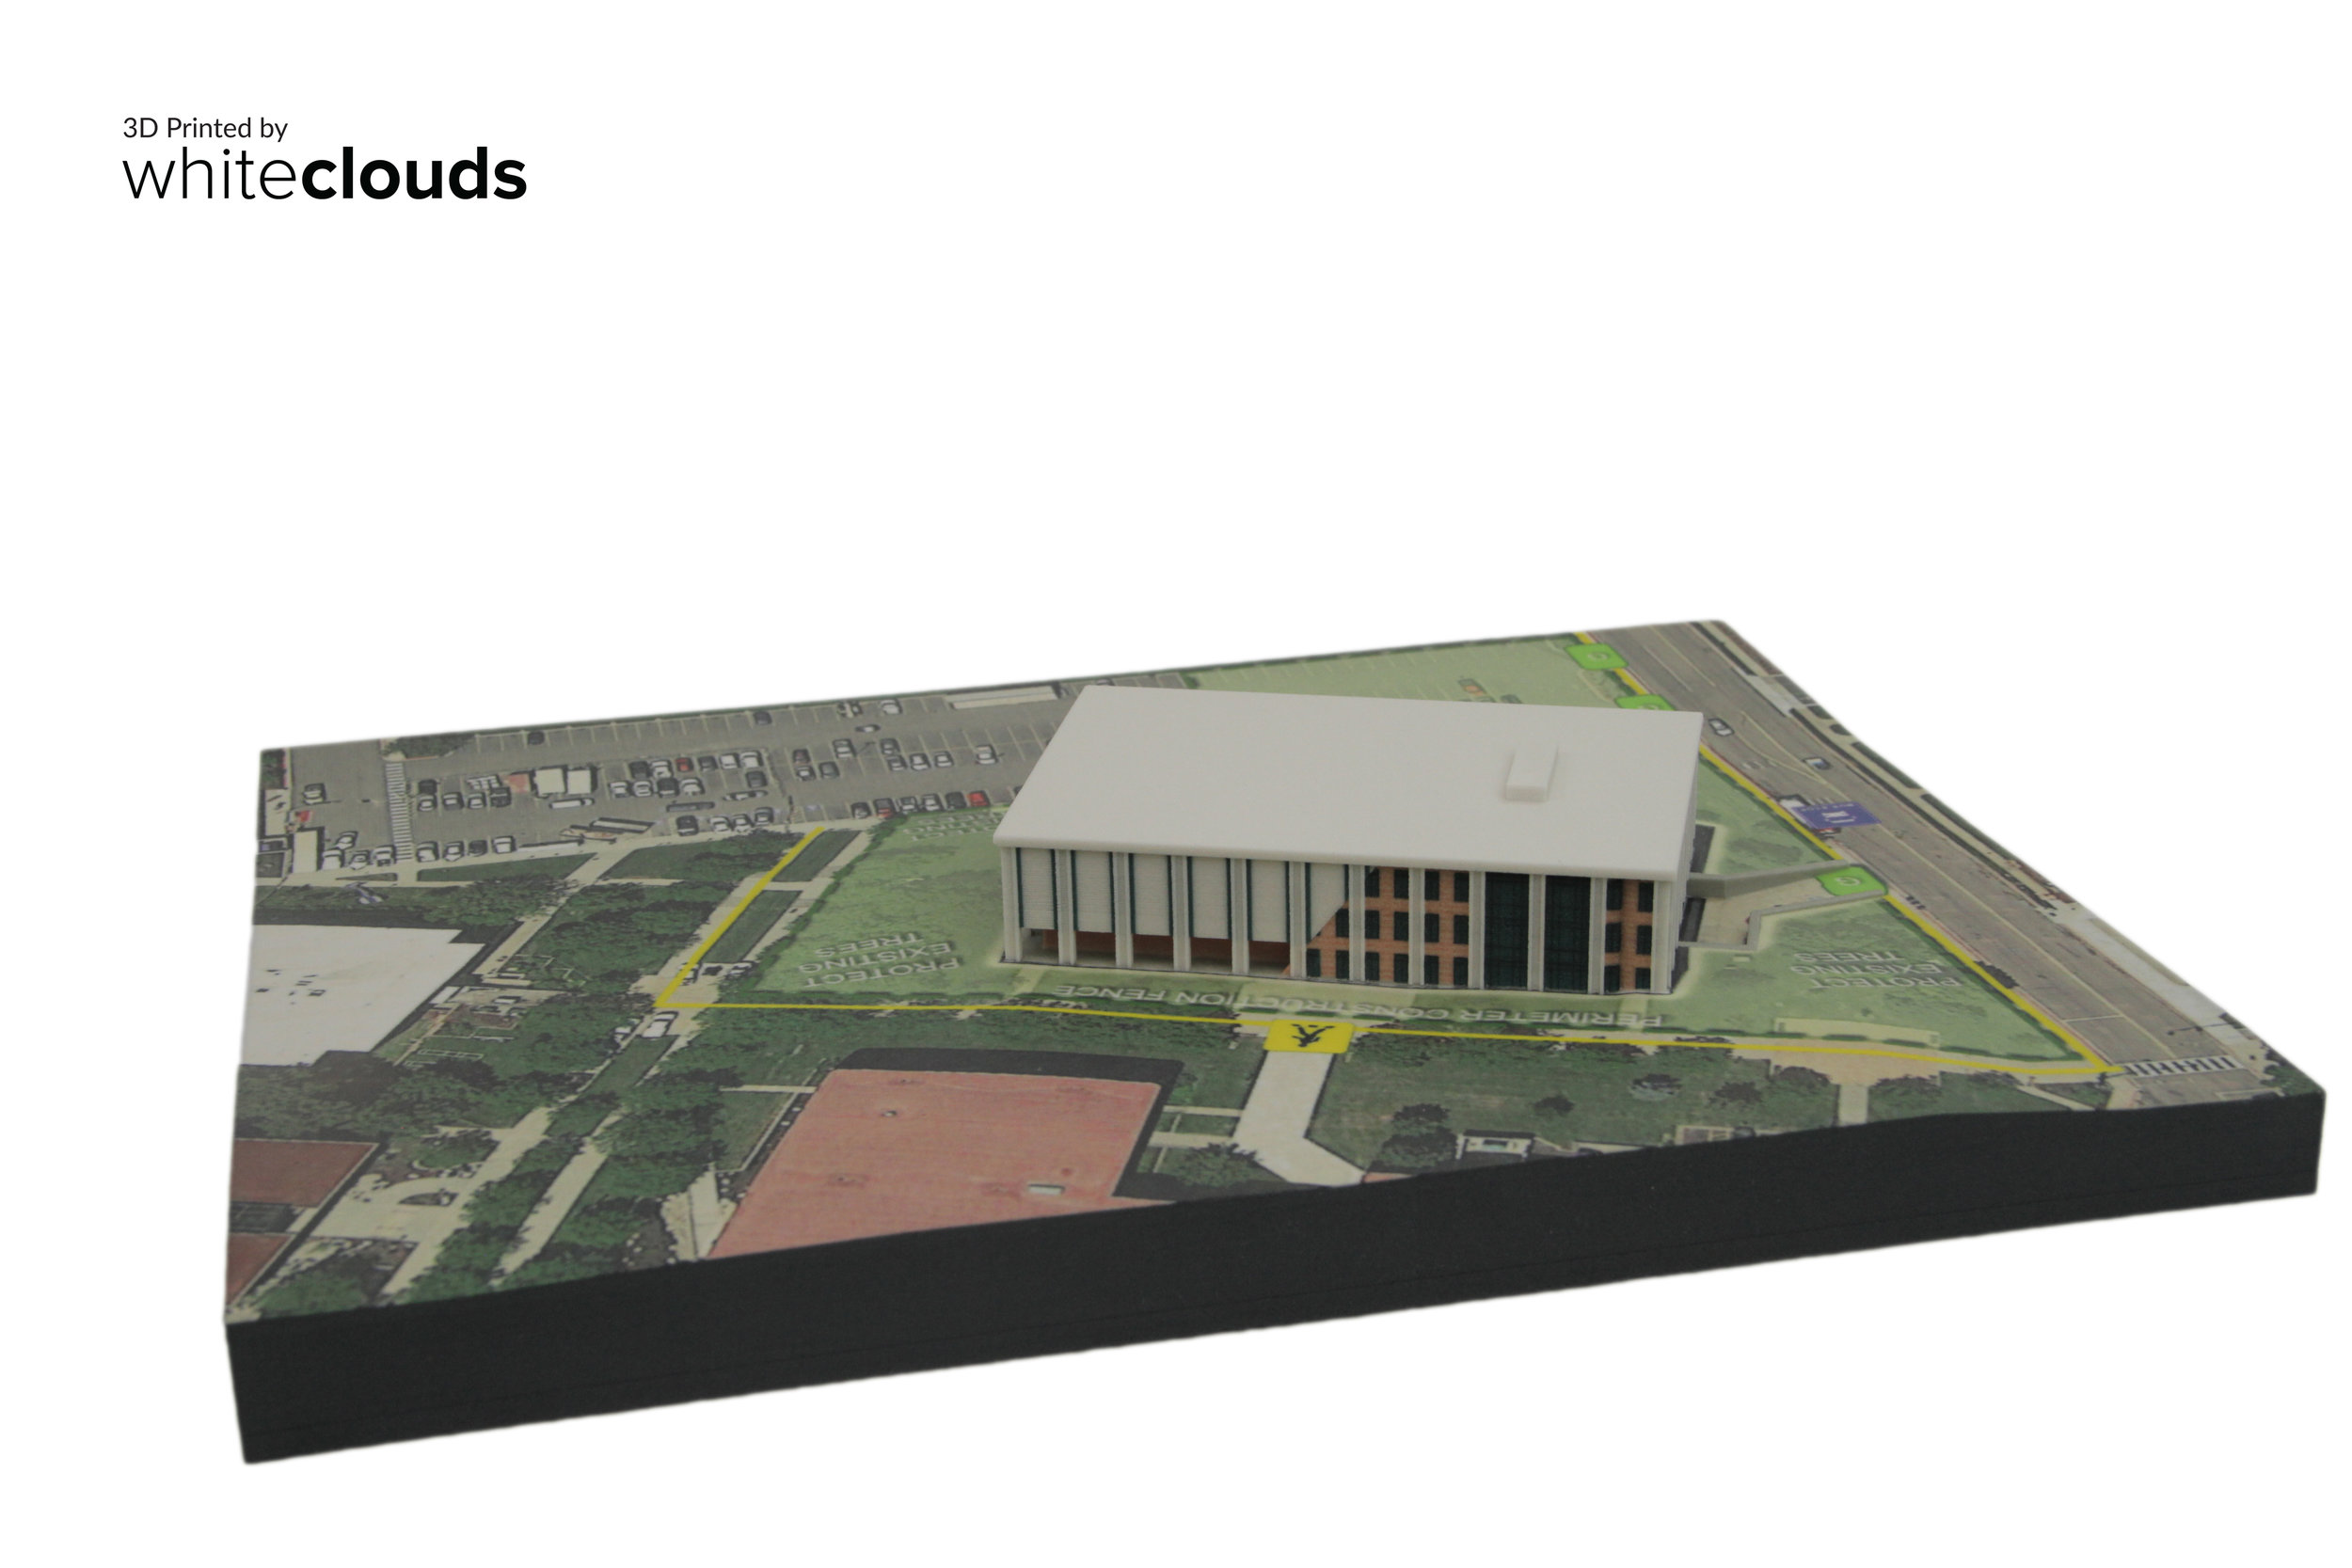 3D-Printed-WhiteCloud-Weber-State-Architecture-Big-D-Weber-State-Edited-Photos-2.JPG